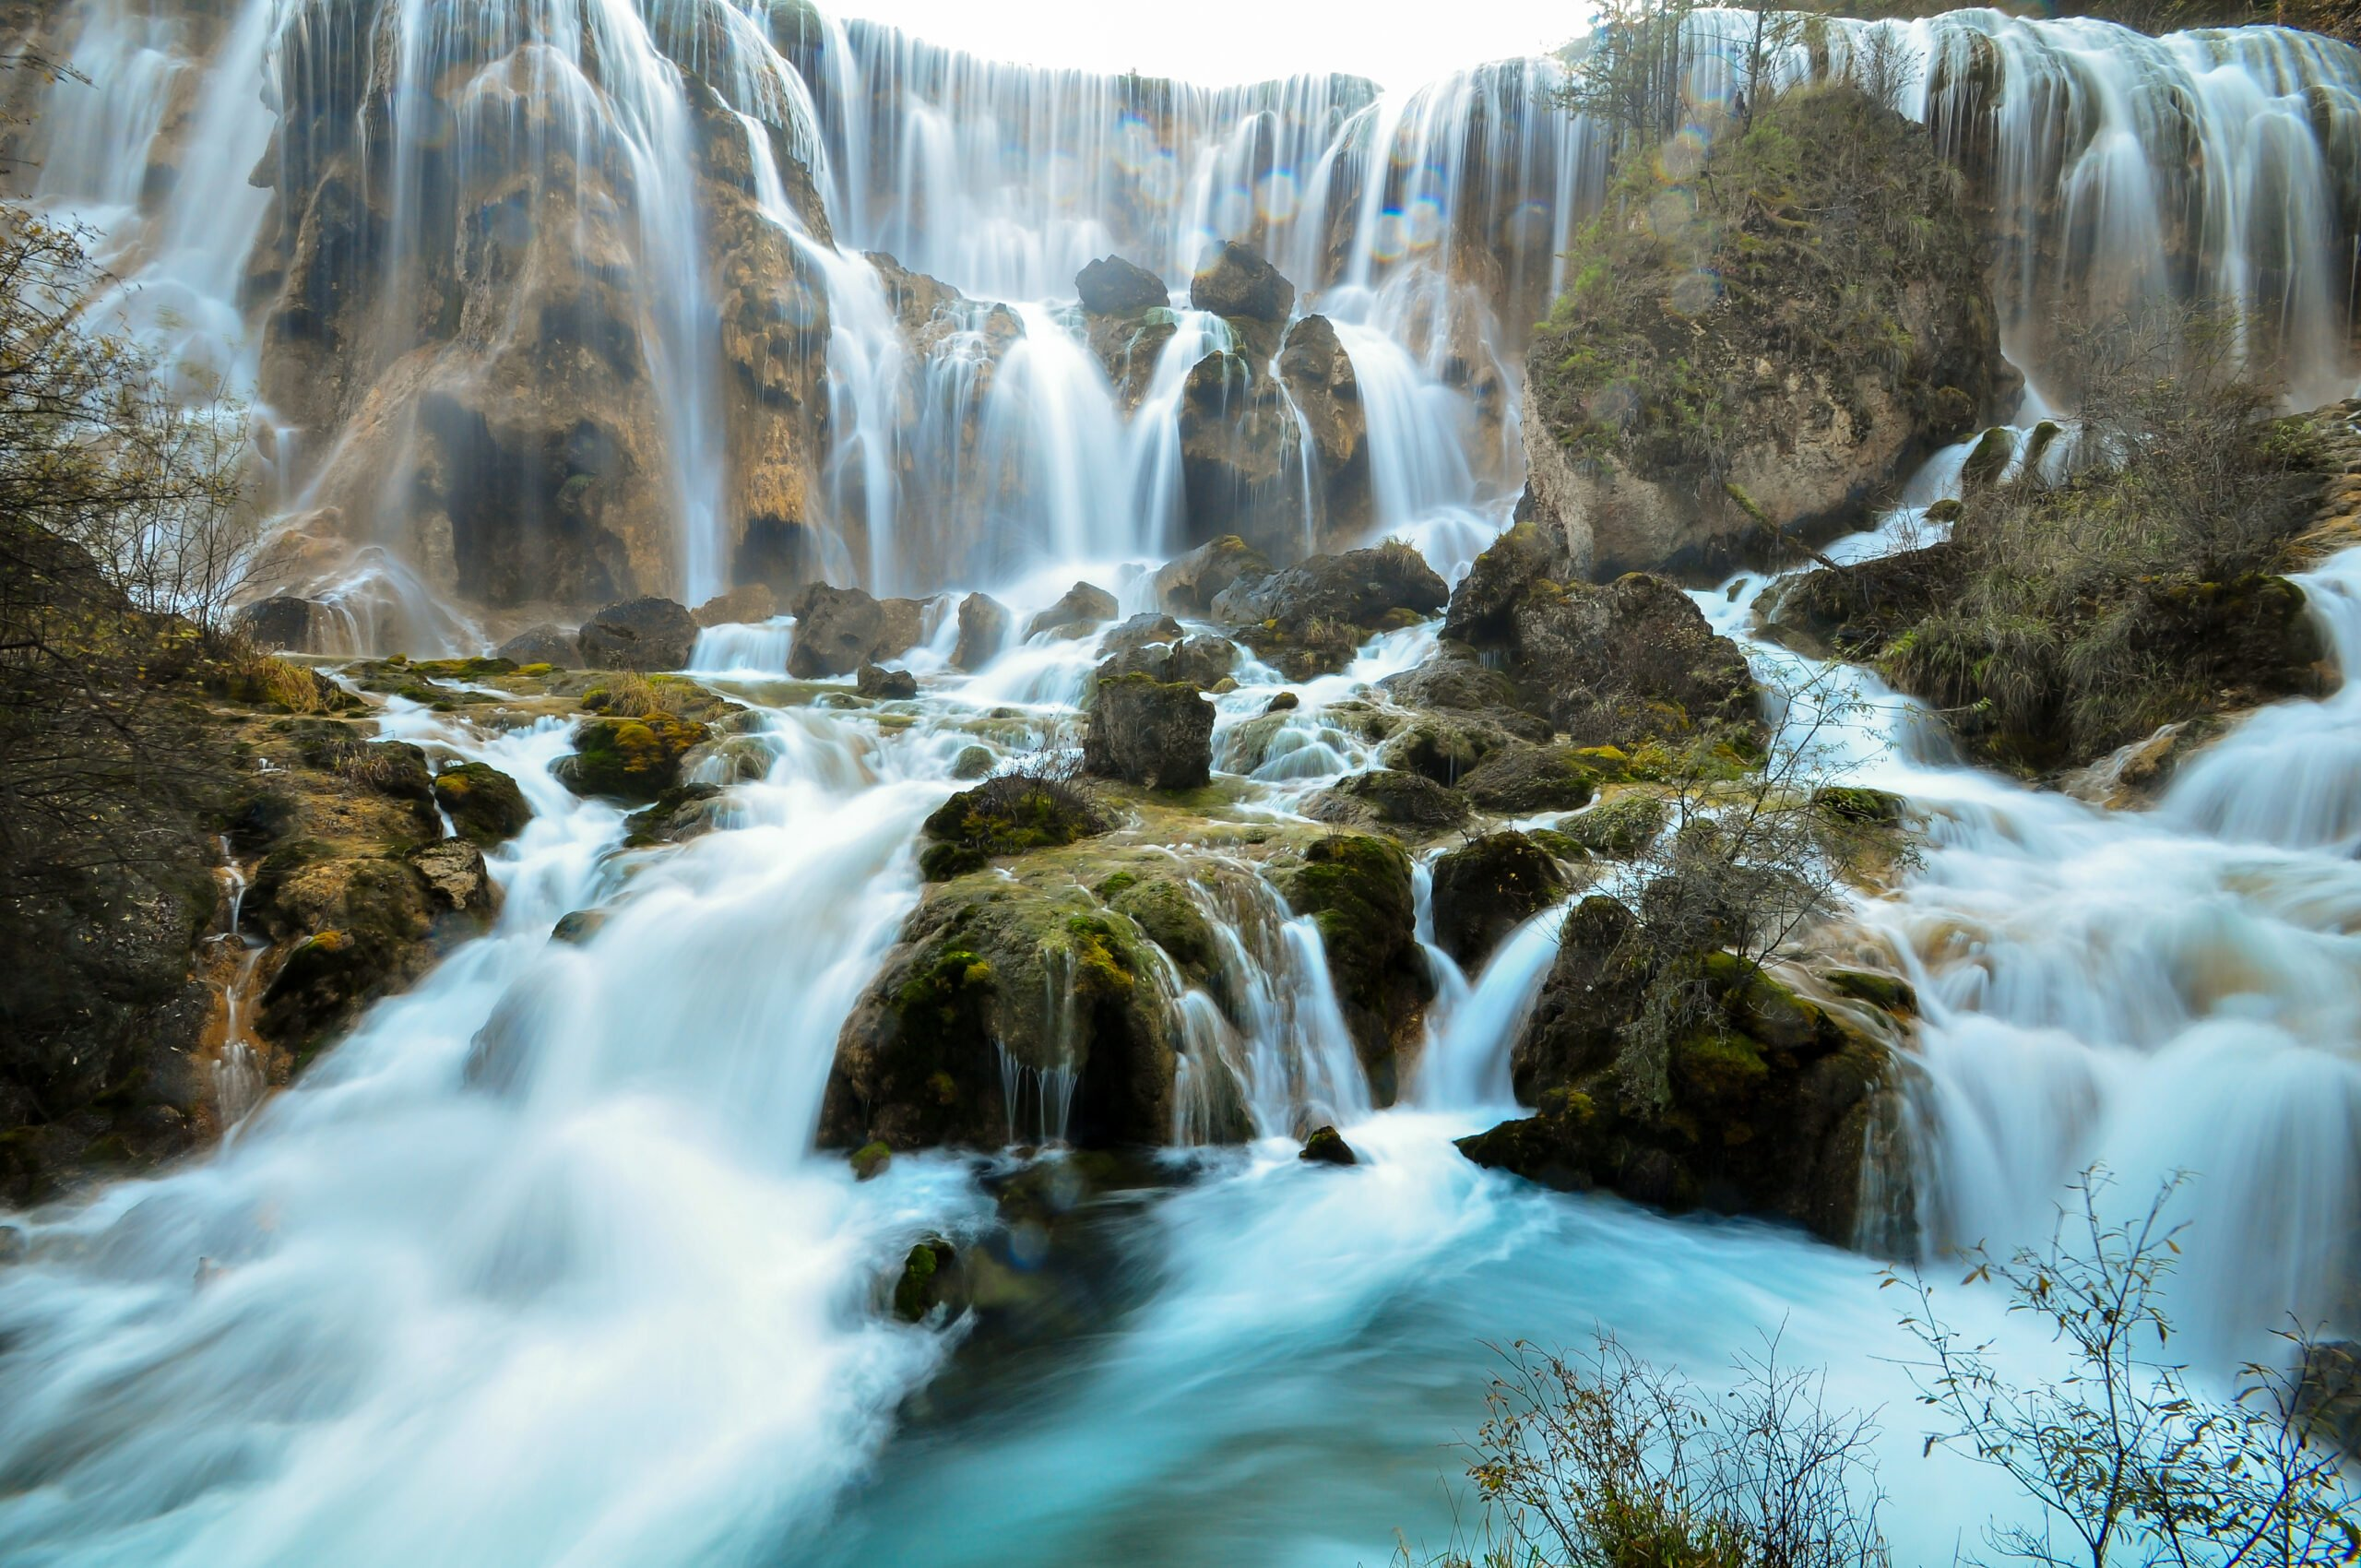 Discover Shuzheng Waterfall In Our Jiuzhaigou Valley 3 Day Package